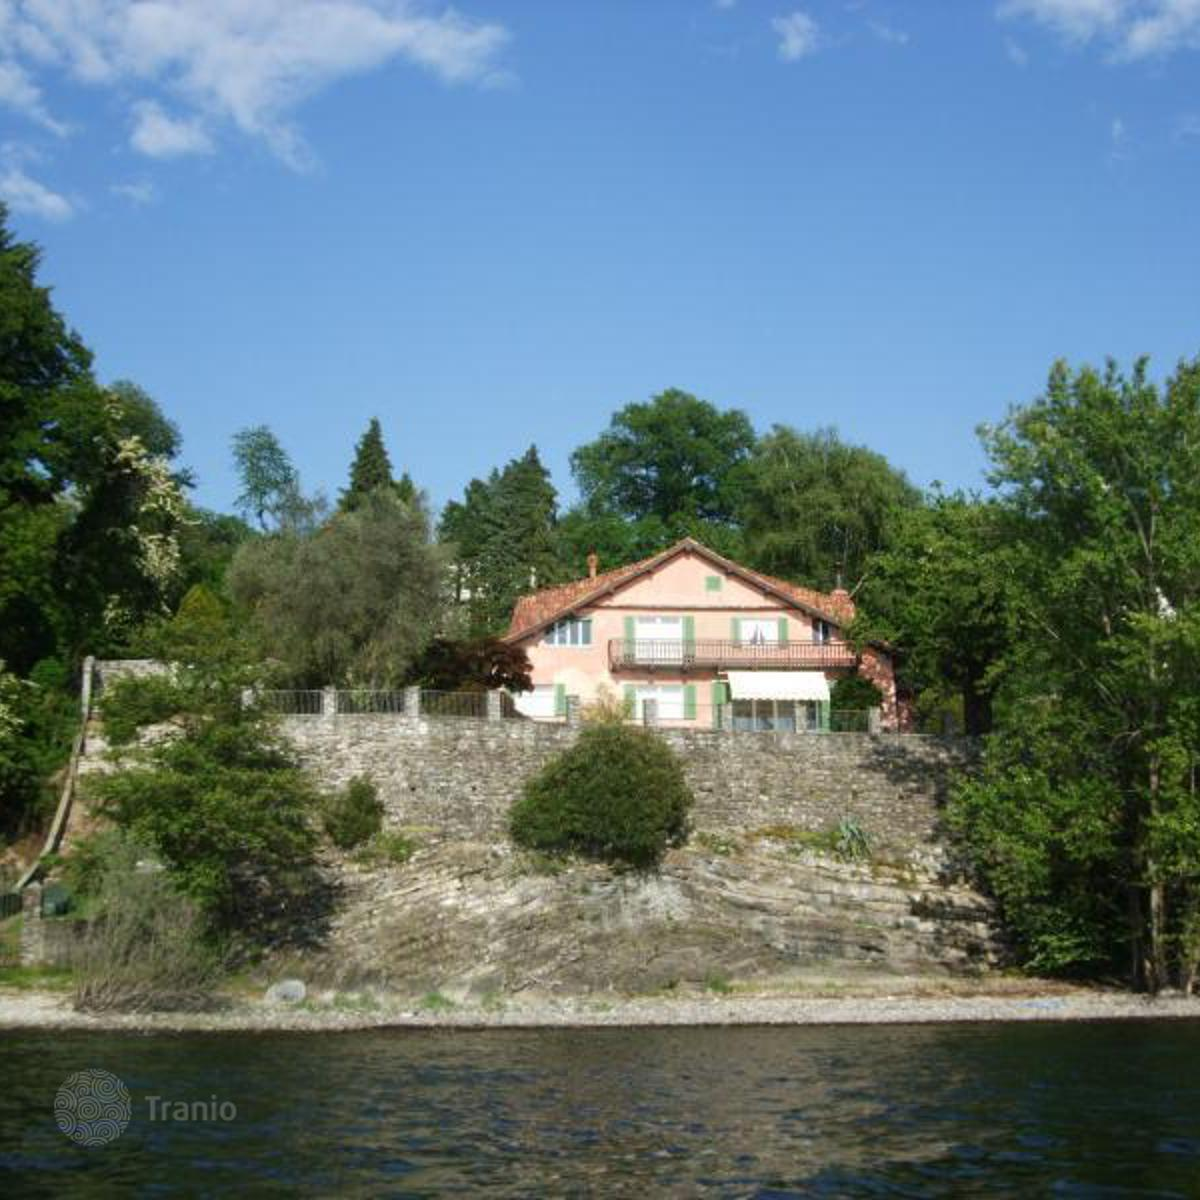 Ghiffa Italy  city pictures gallery : Listing #1302224 in Ghiffa, Piedmont, Italy — Villa overseas ...